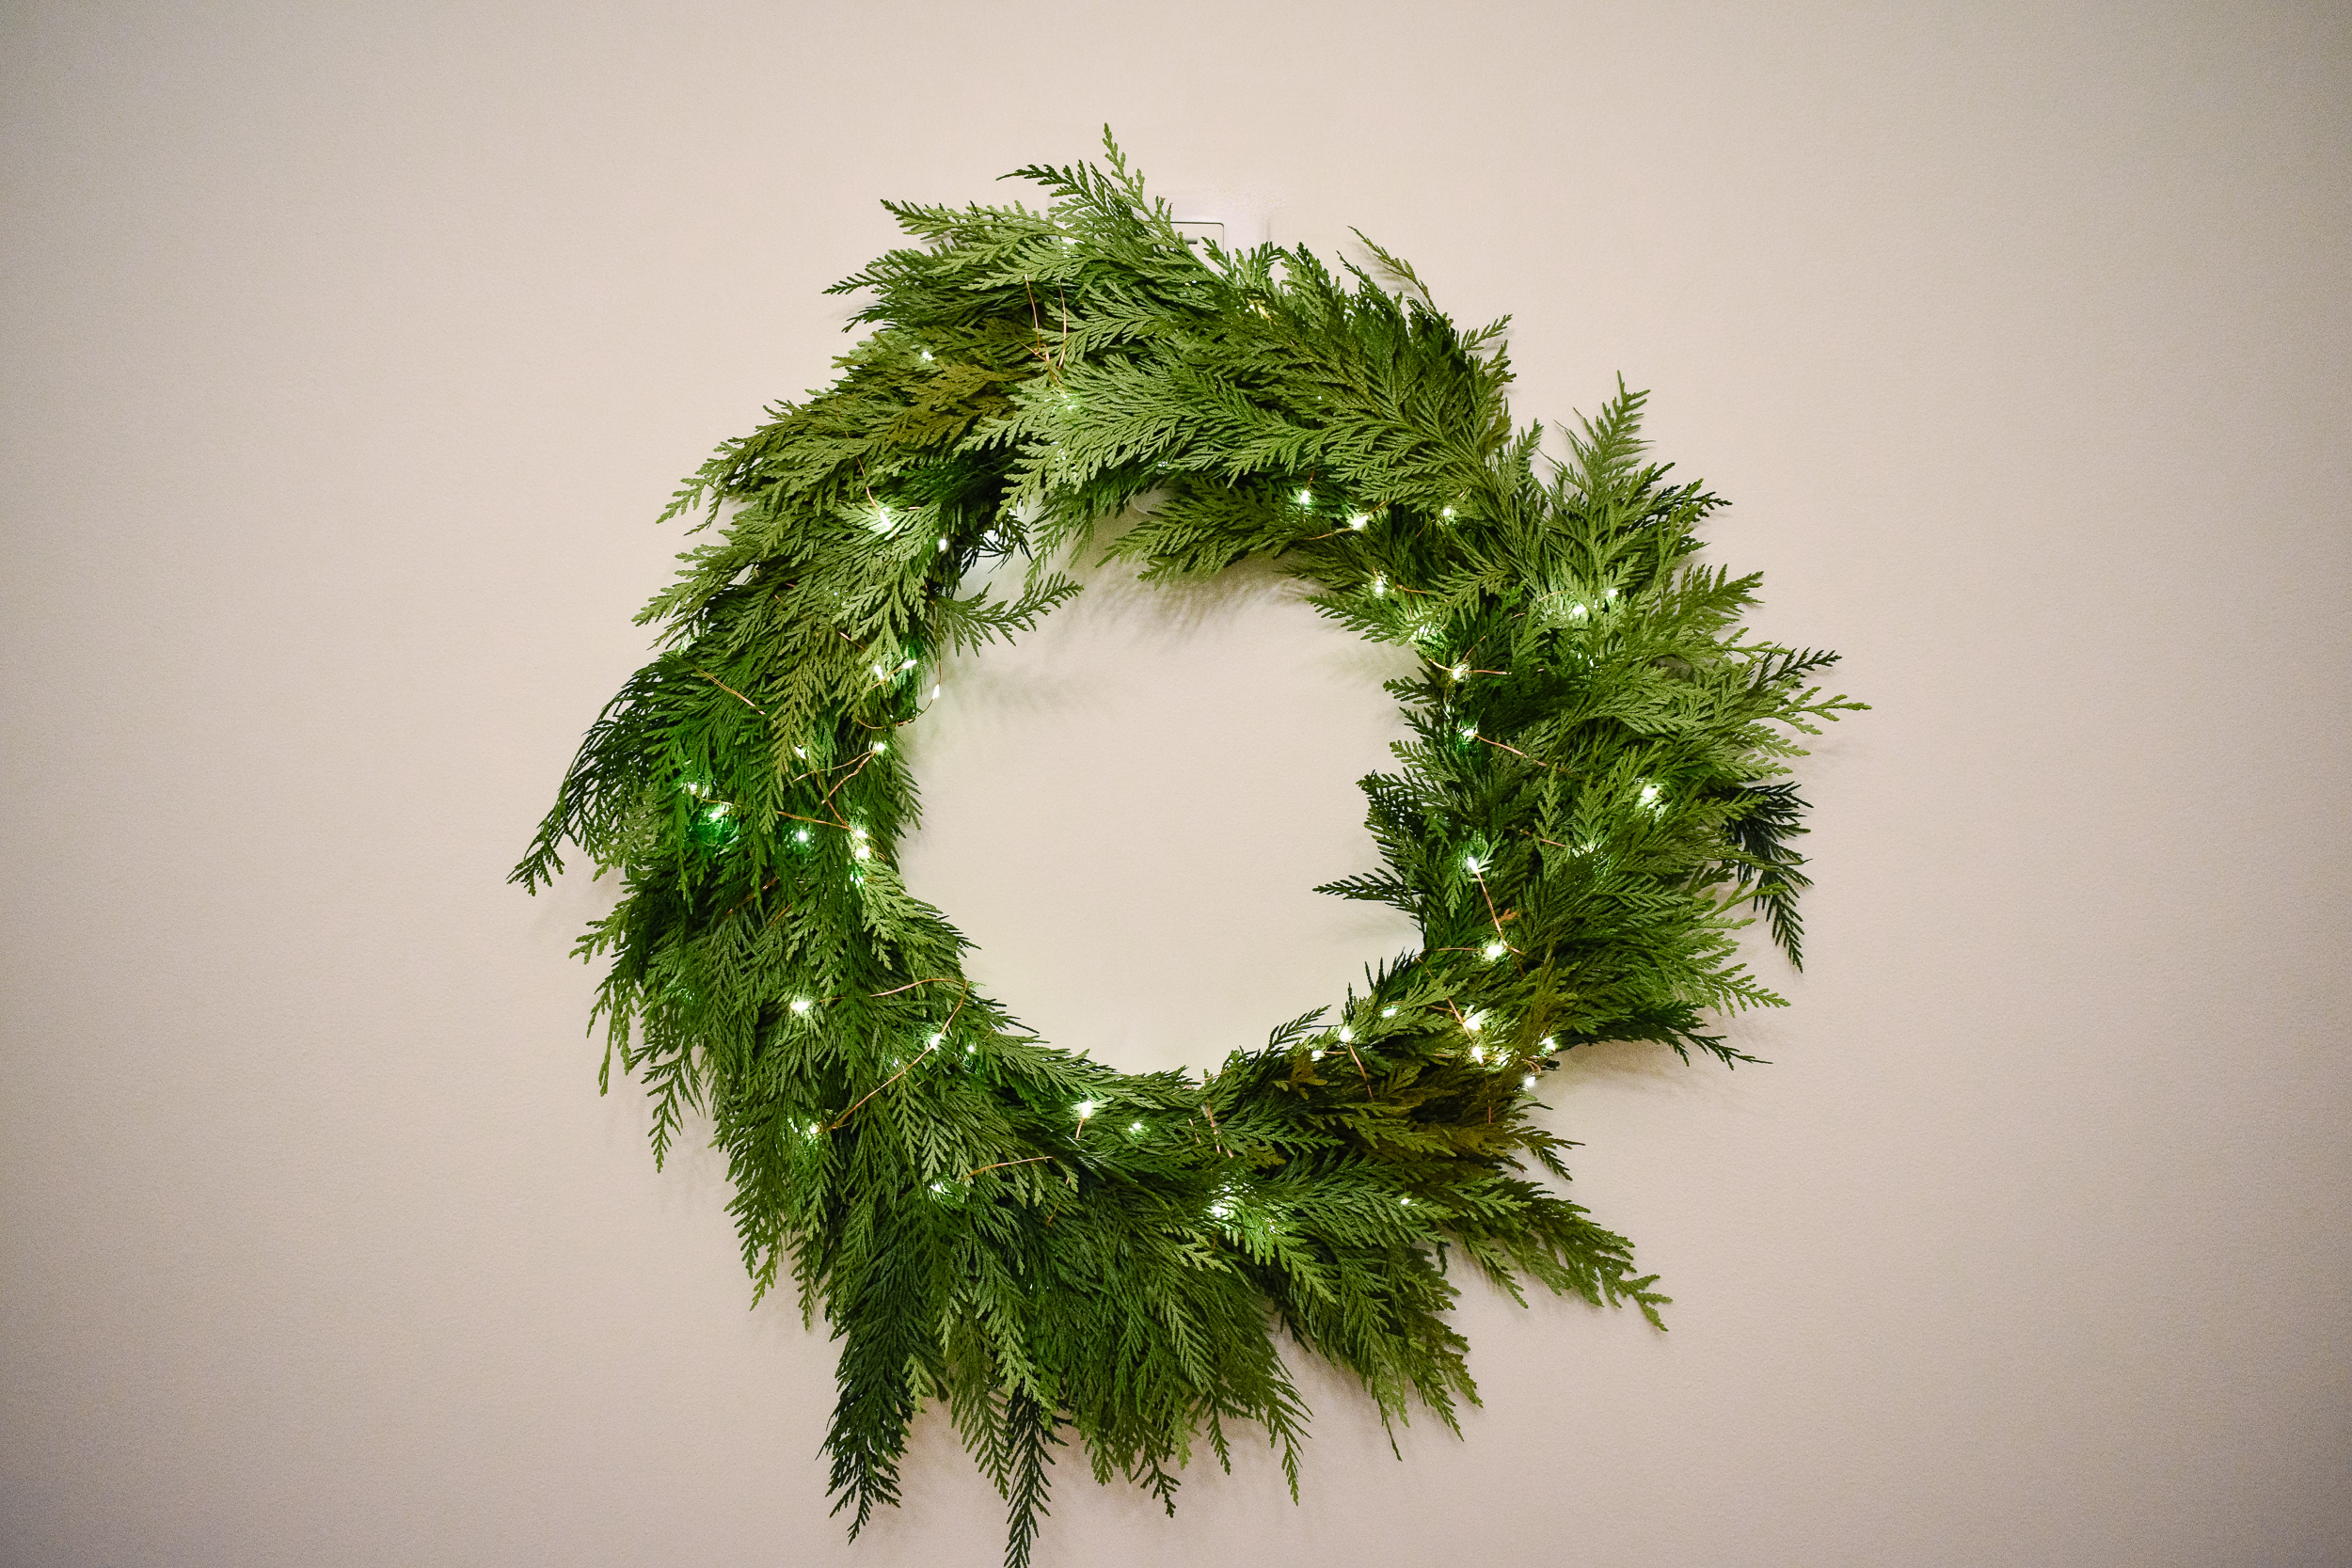 Minimalist Christmas Decorations: Twinkling wreath